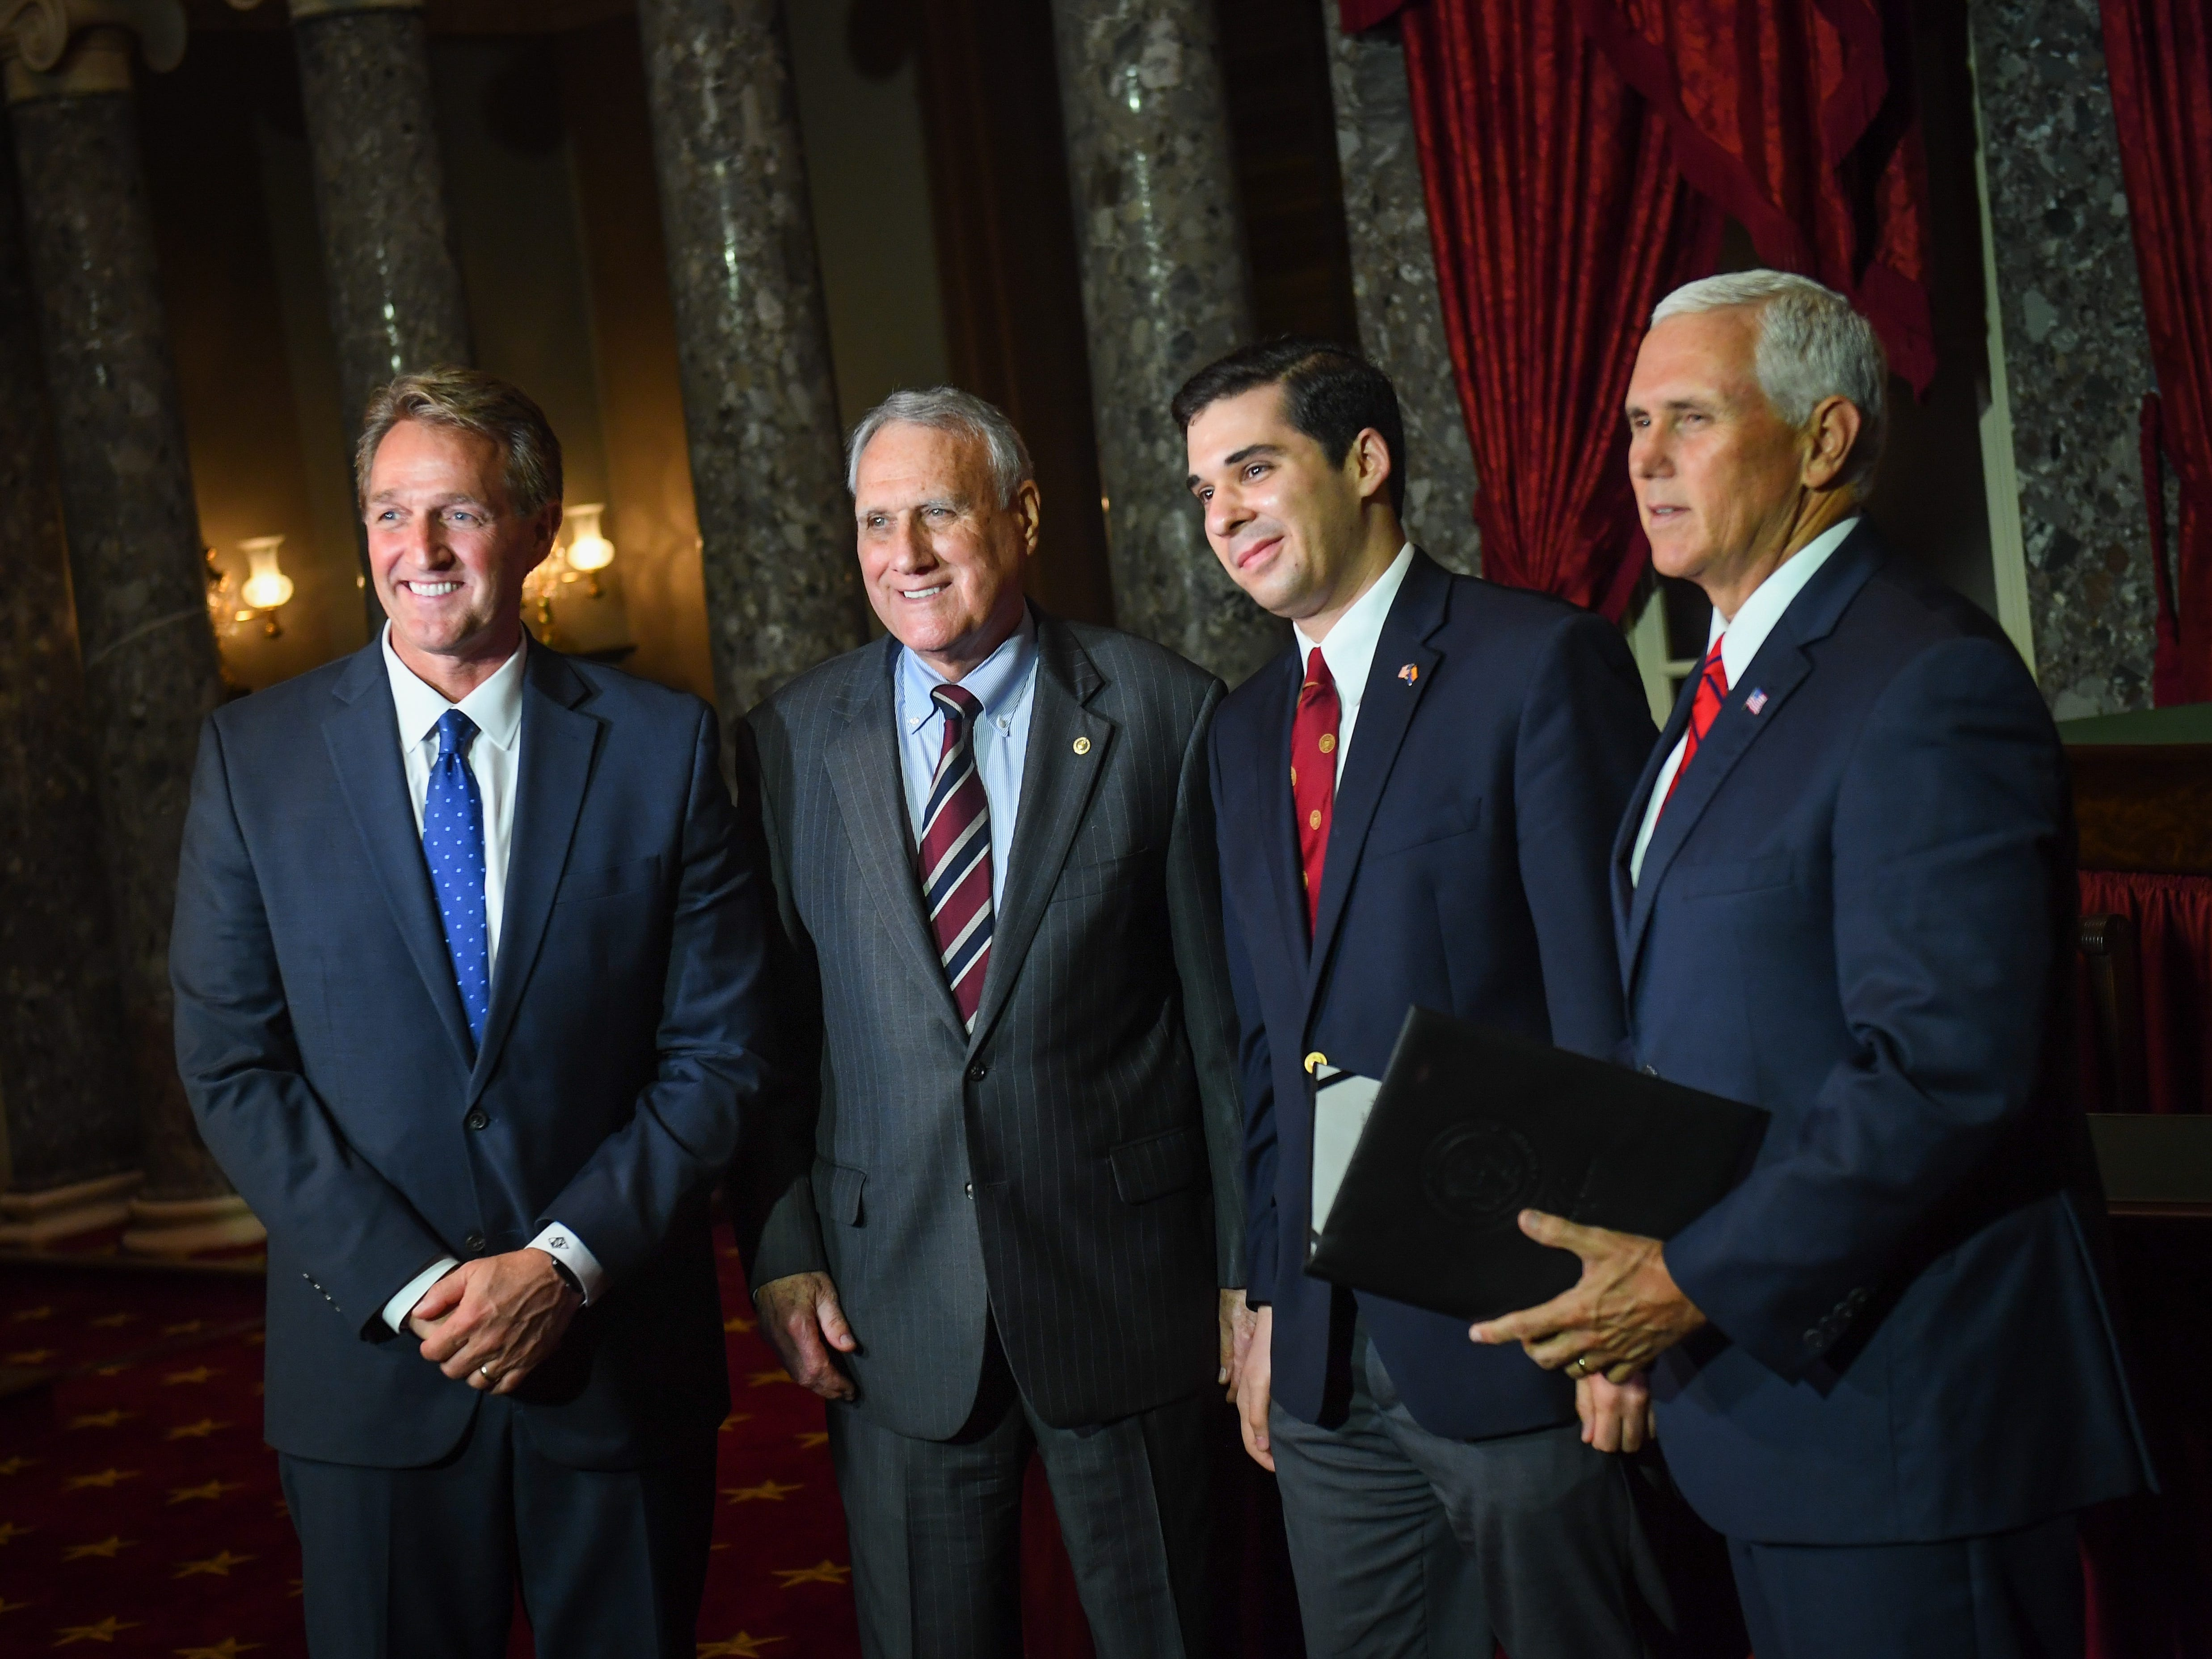 Senator Jeff Flake, R-Ariz., left, offers congratulations to Jon Kyl after he was sworn-in by Vice President Mike Pence during a reenactment ceremony on Sept. 5, 2018 in Washington along with Kyl's grandson Christopher Gavin.